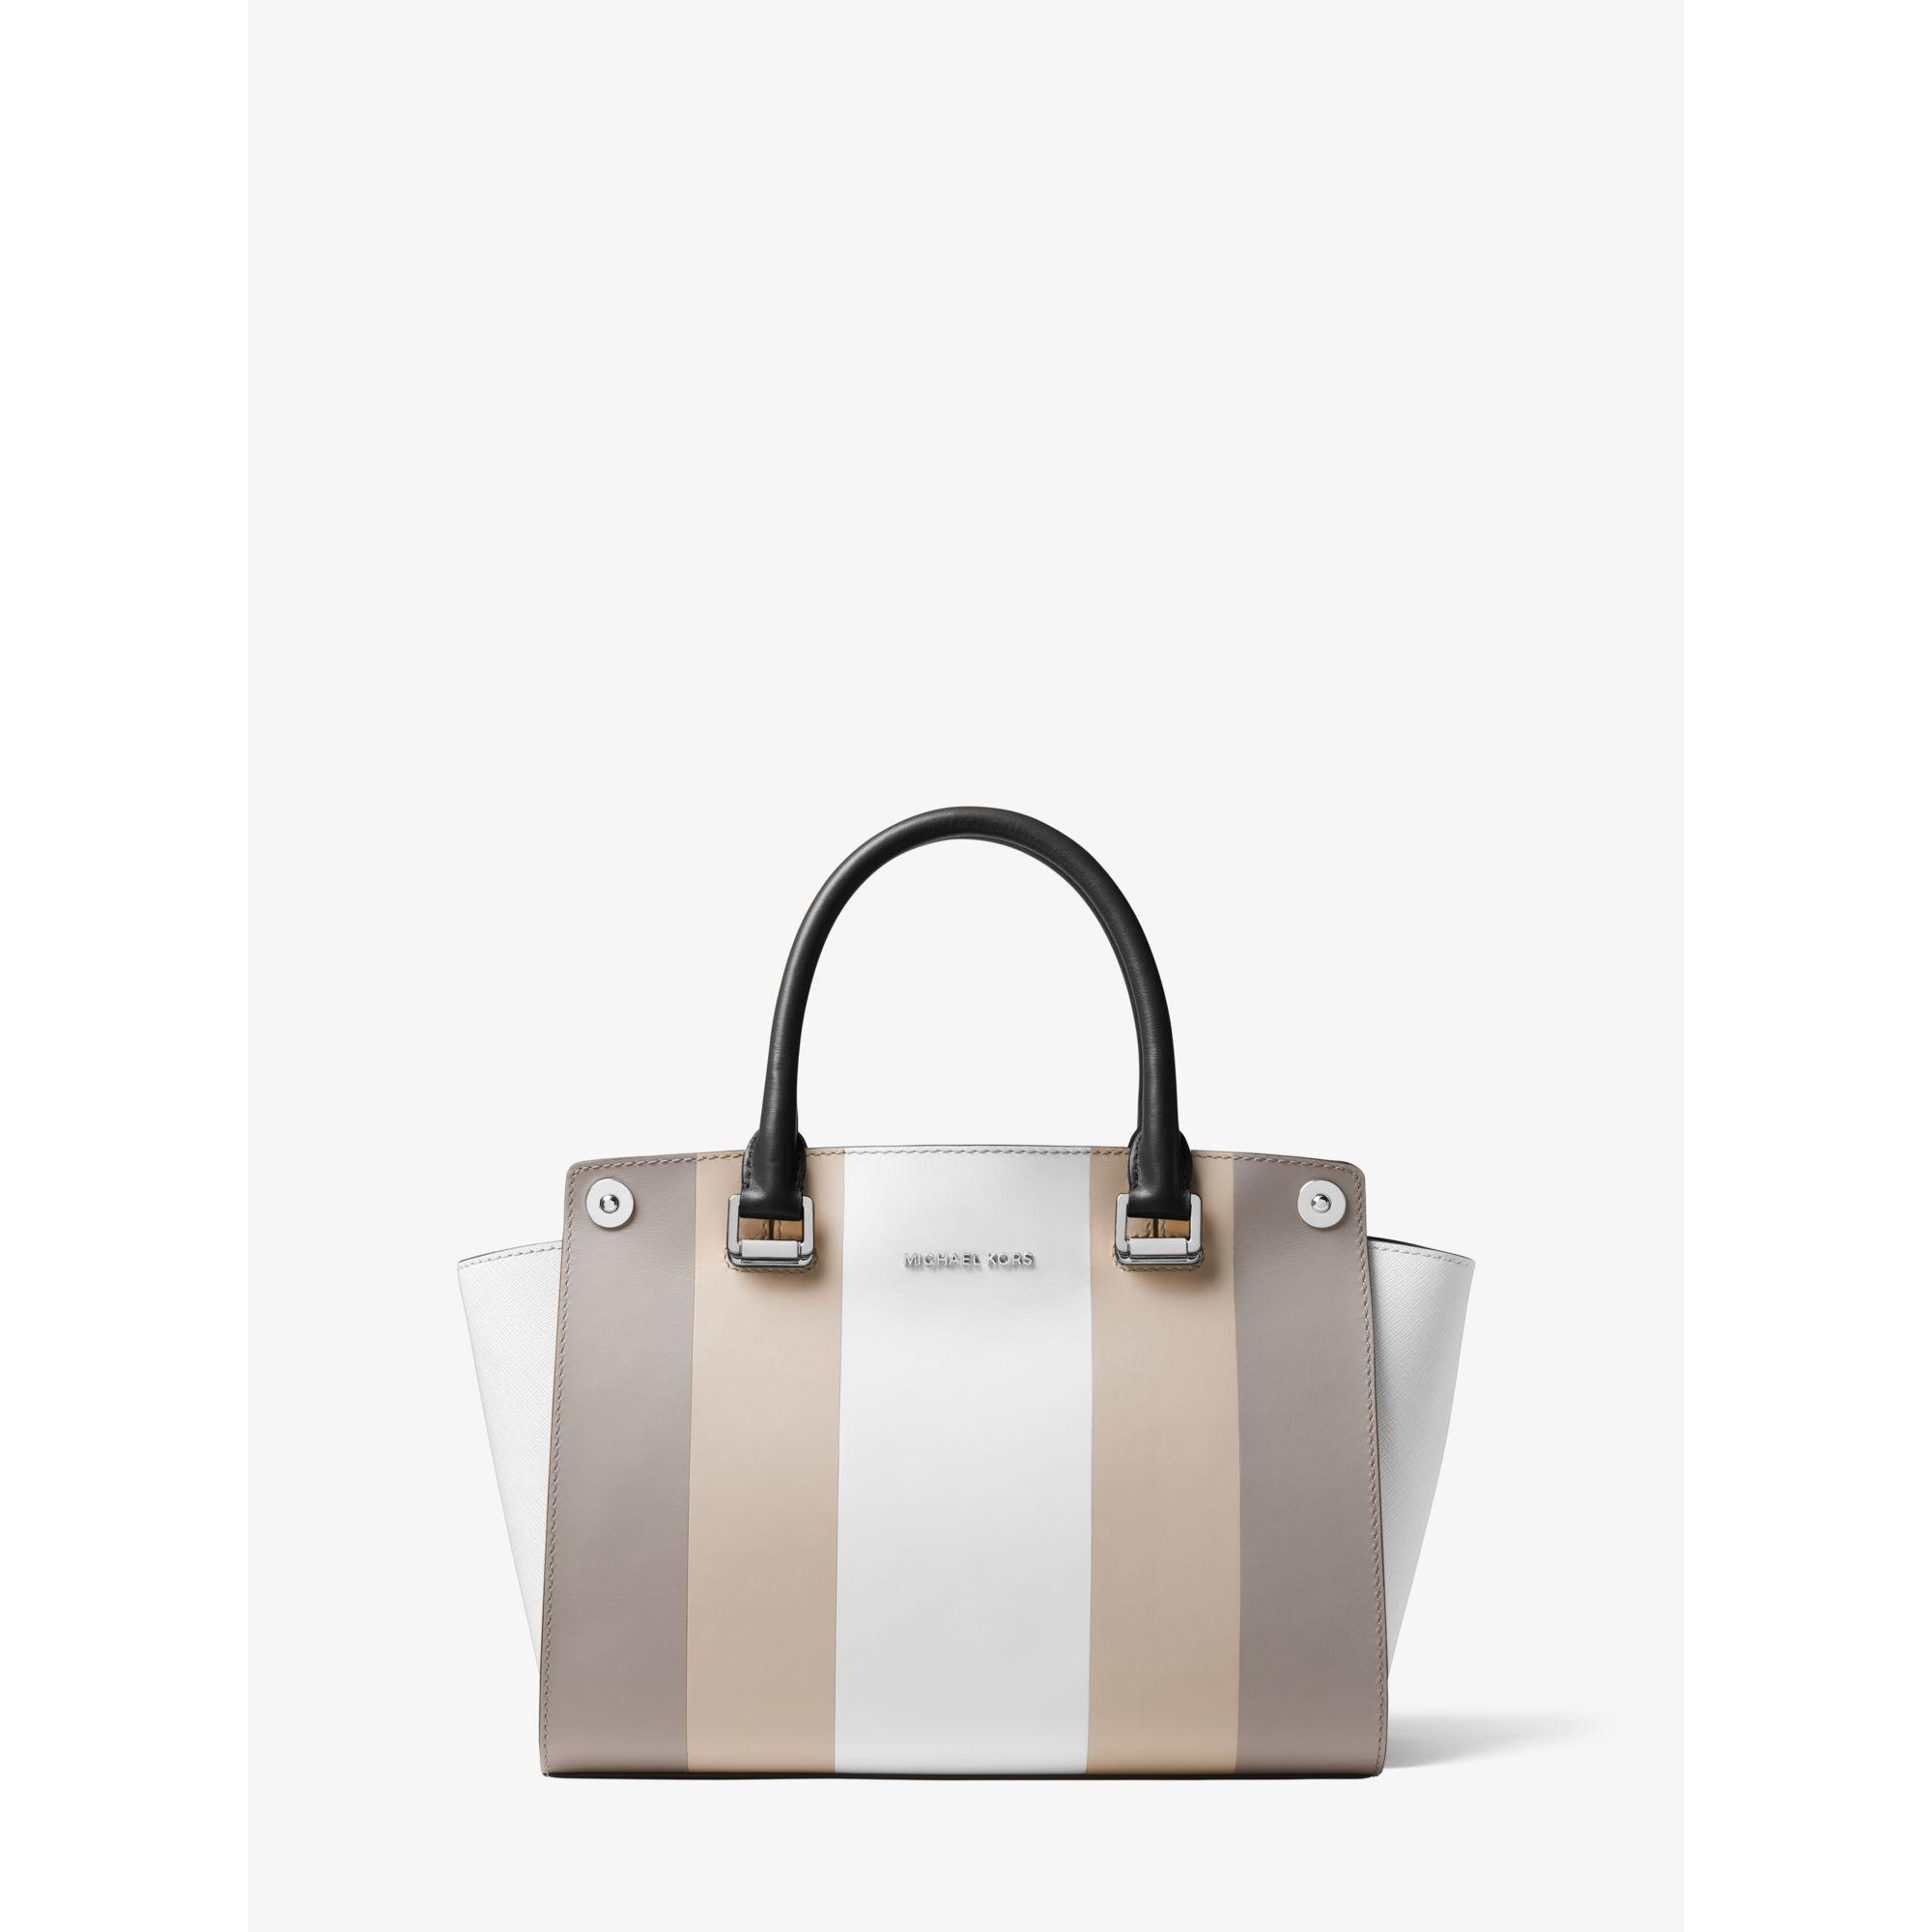 a5e2b9df115b Michael Kors Handbags Selma 3 In 1 | Stanford Center for Opportunity ...